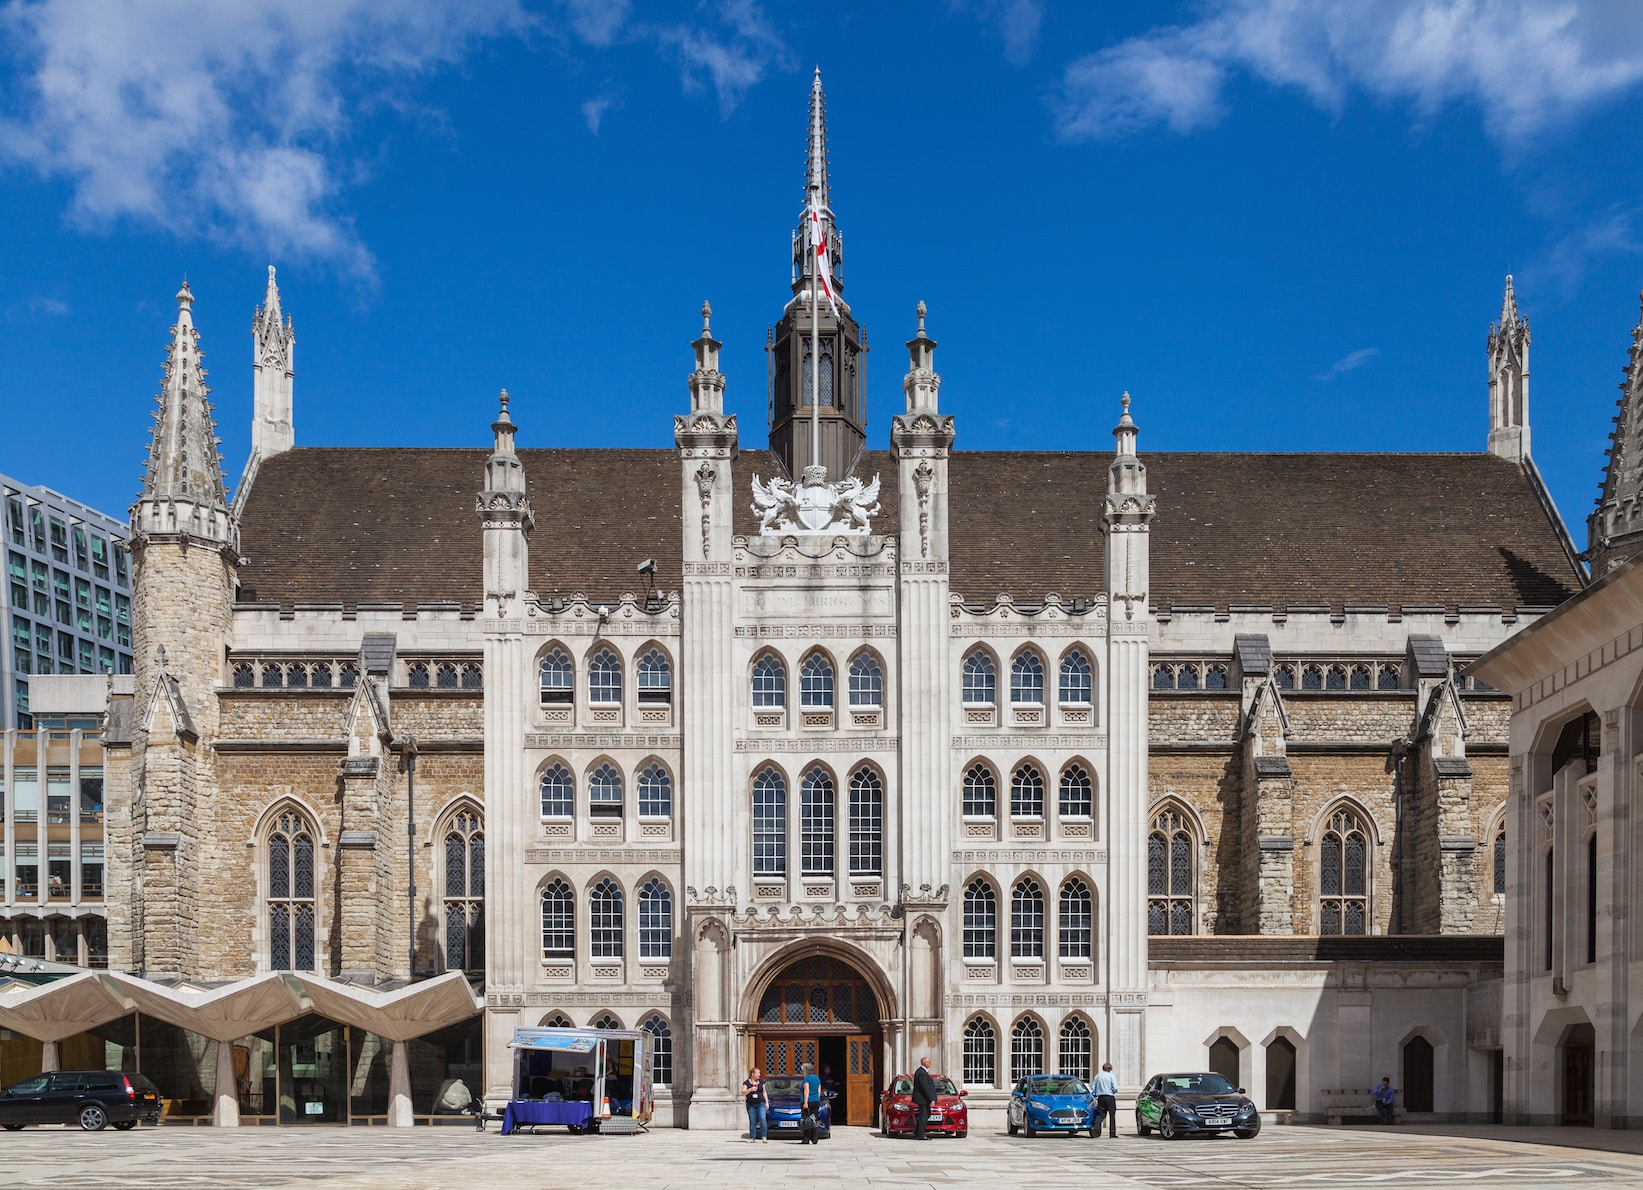 The Guildhall - one of the best places to visit in London for culture | pic Dilif